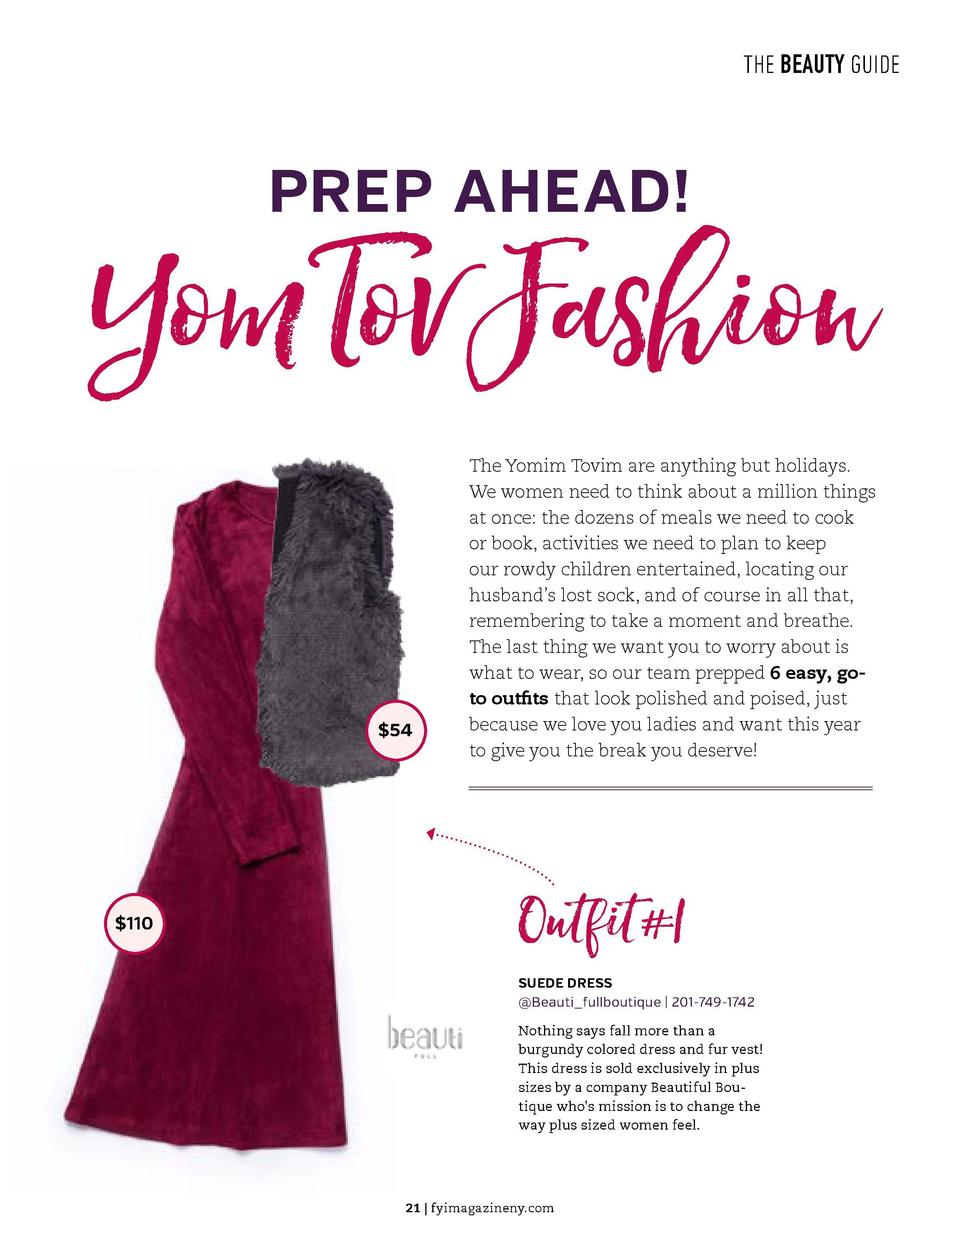 THE BEAUTY GUIDE  THE BEAUTY GUIDE  PREP AHEAD   Yom Tov Fashion  u  STEP 4  EYES We are almost done  Now apply mascara to...